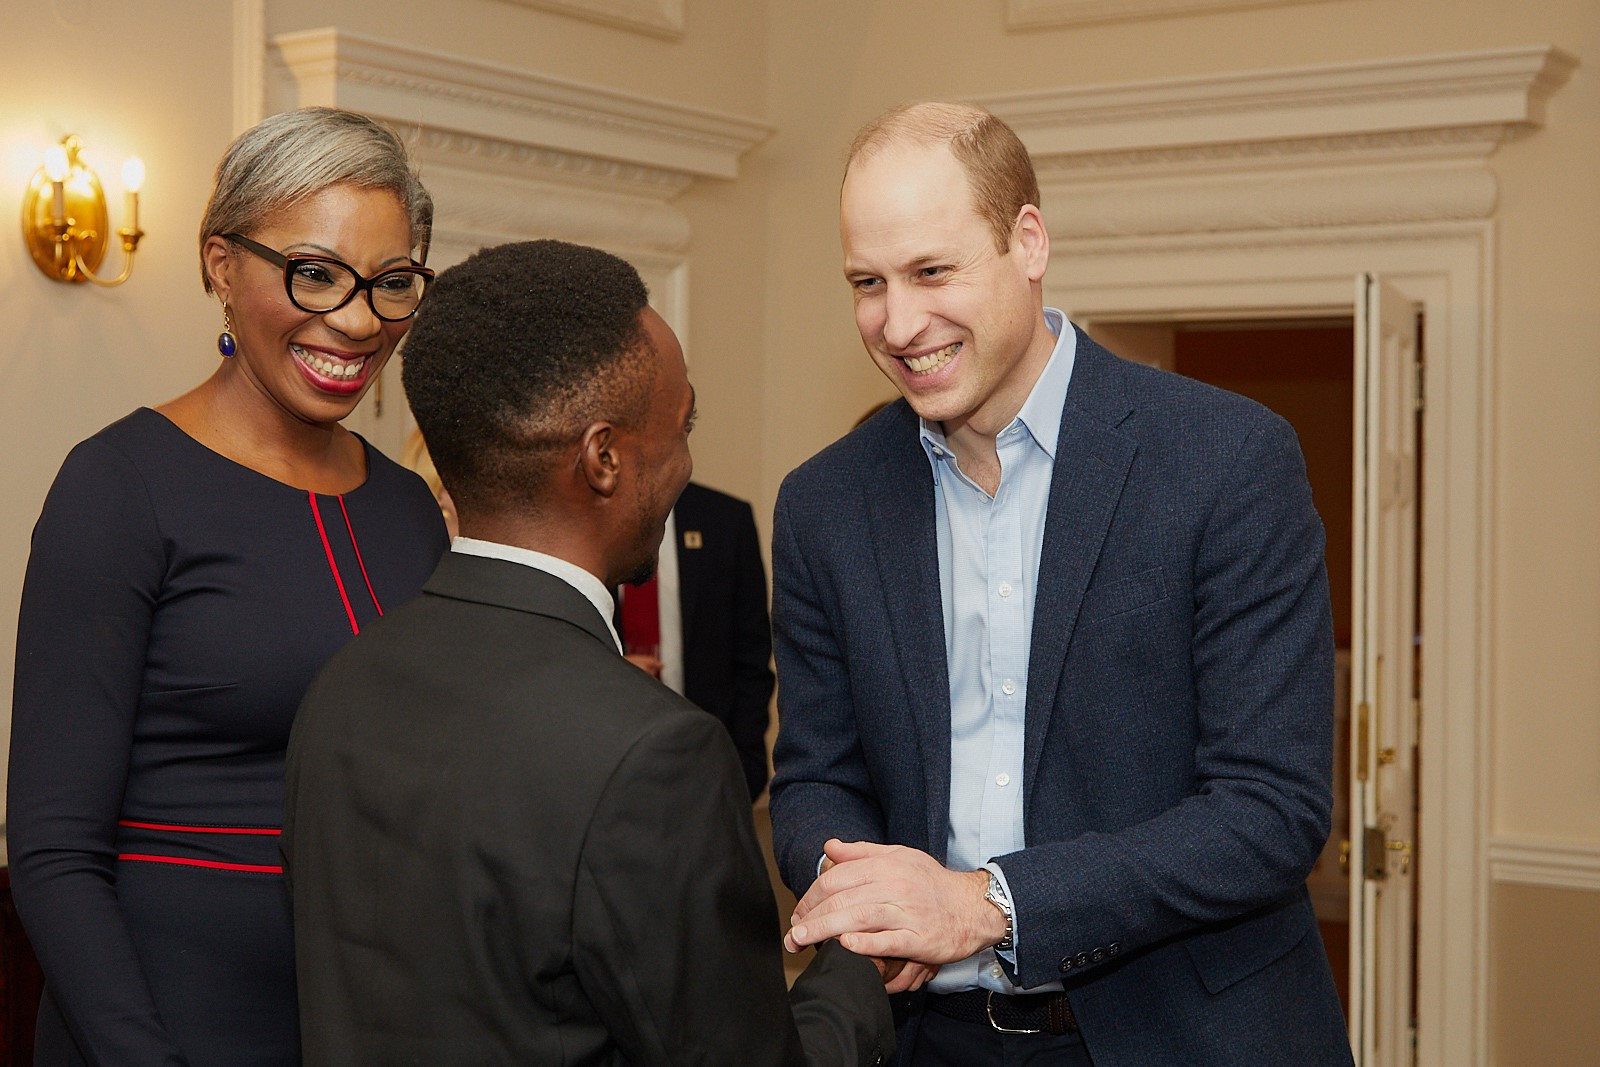 Erick gets congratulated by Prince William